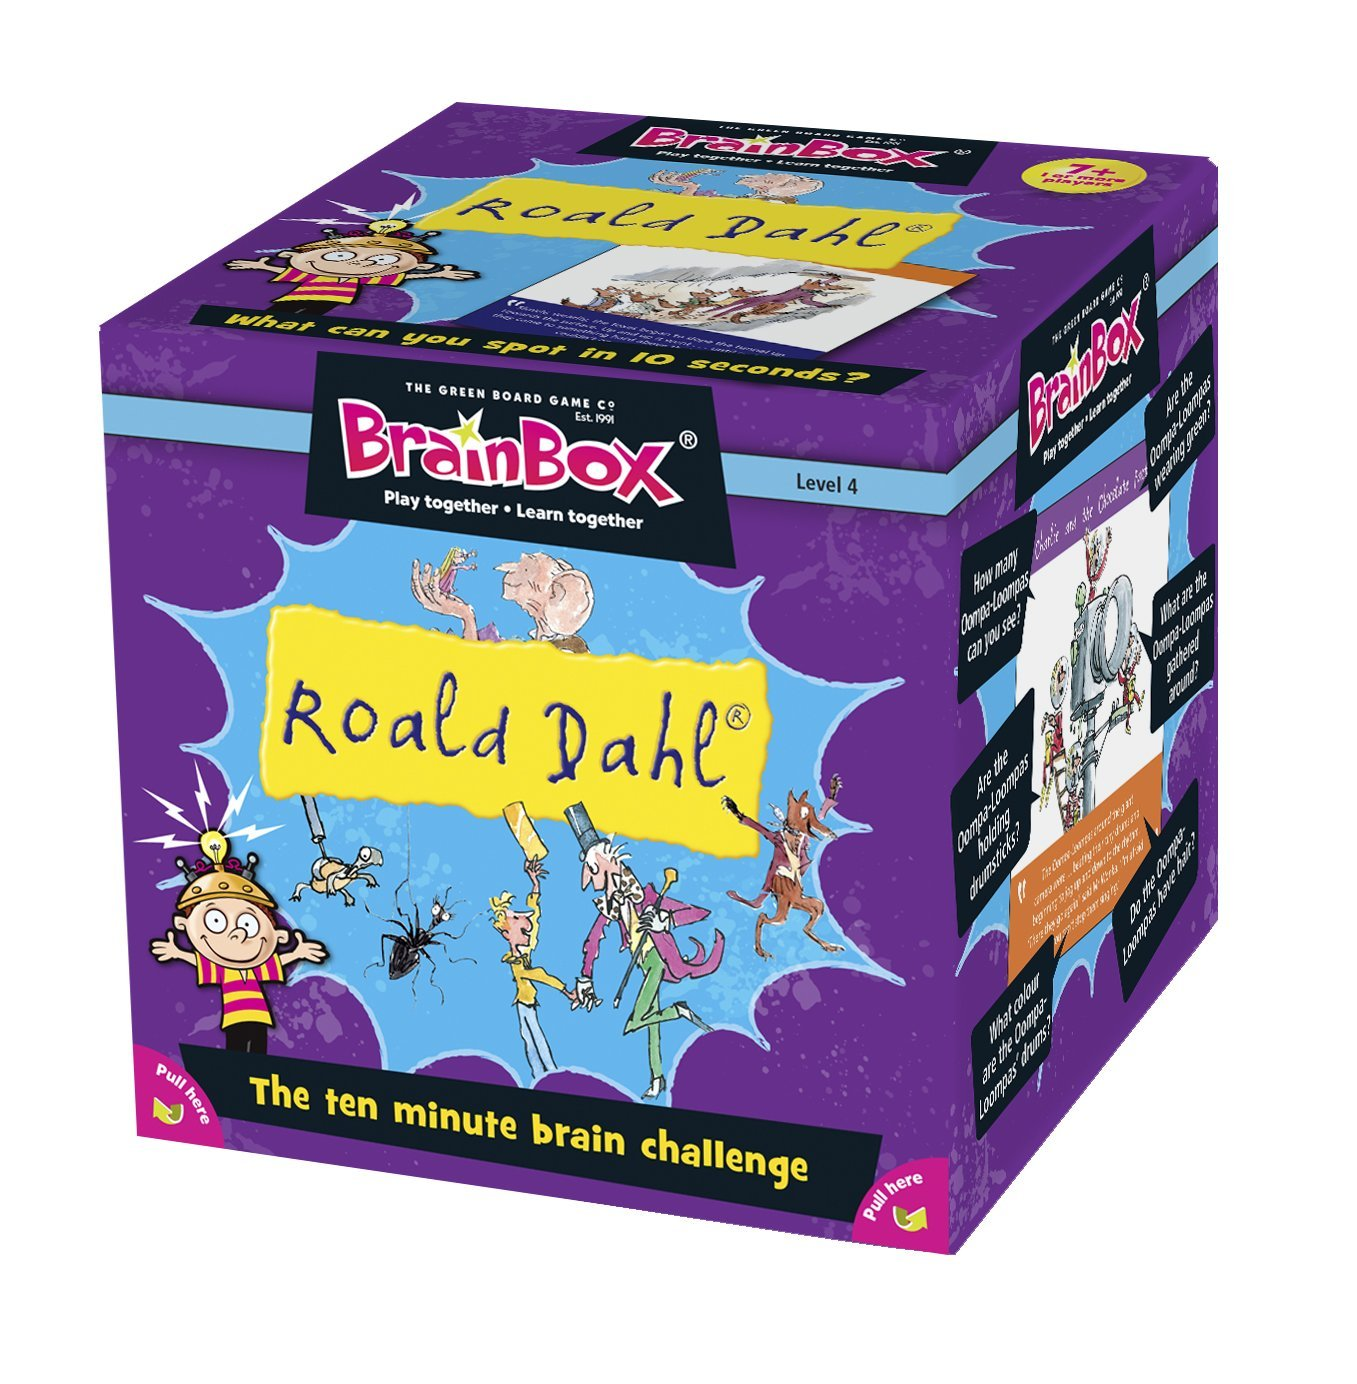 Roald Dahl's BrainBox